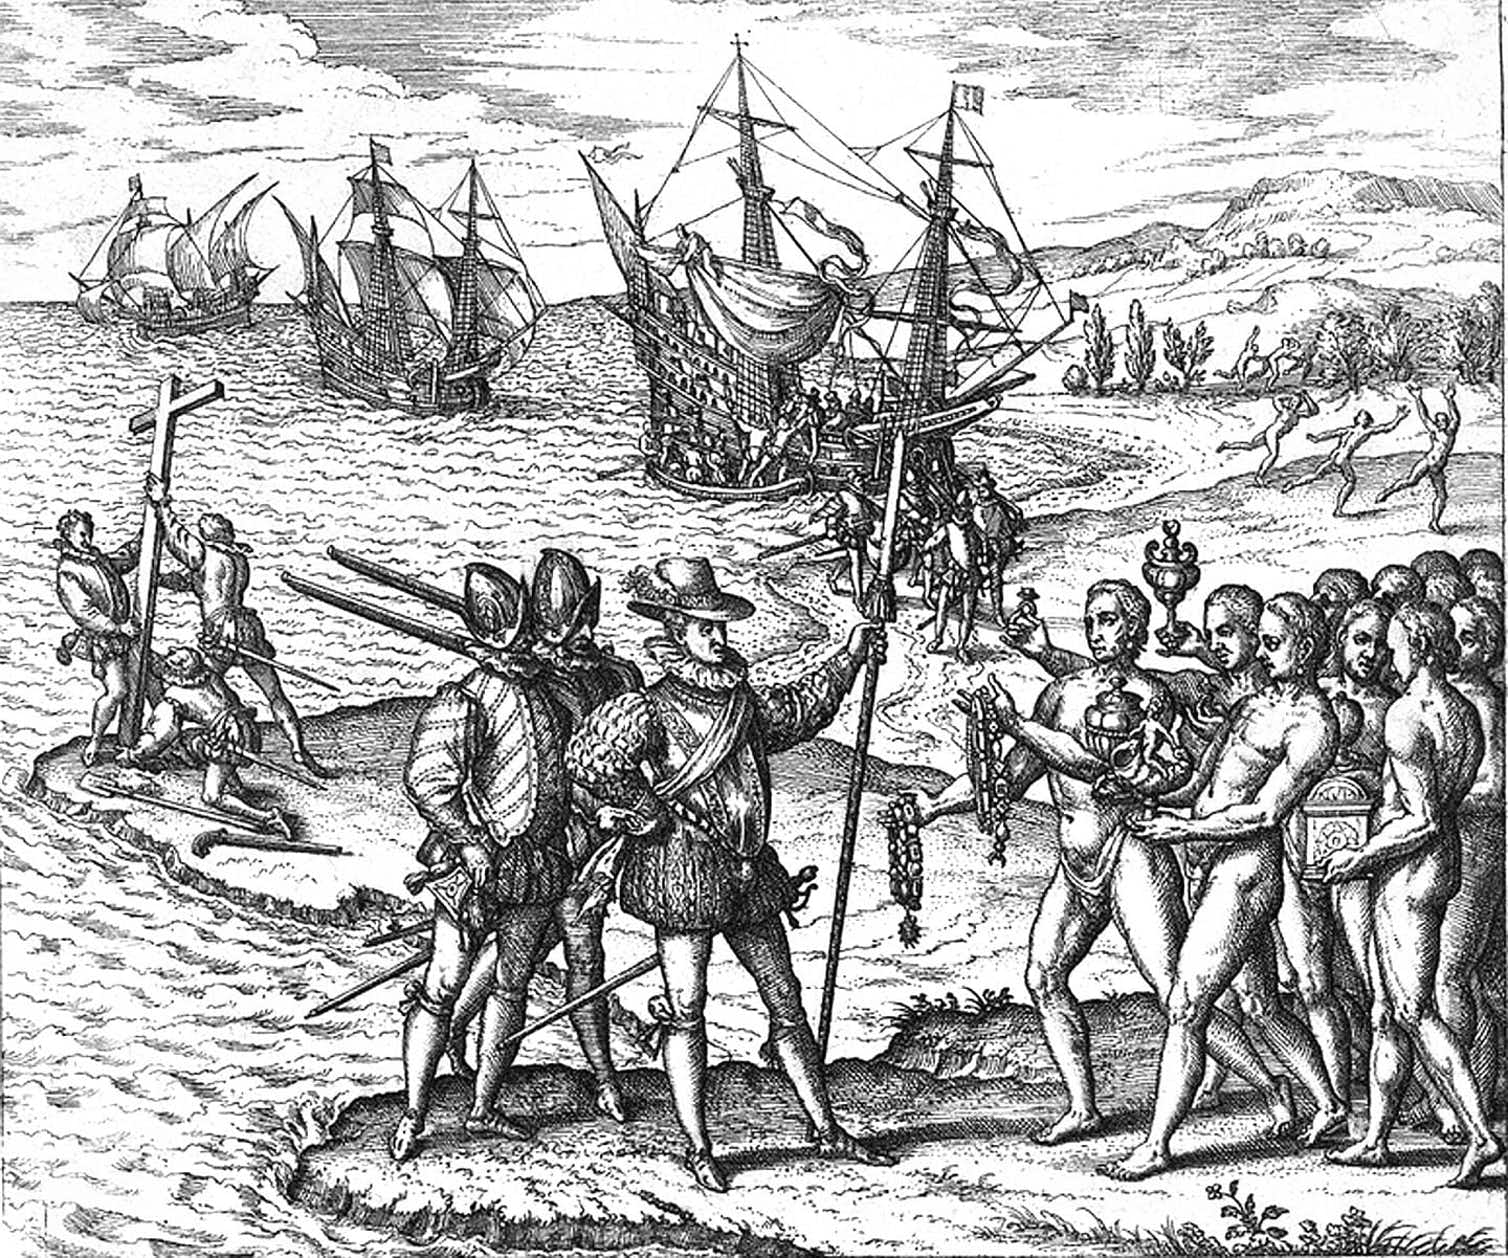 Engraving depicting Christopher Columbus landing on Hispaniola. His expedition originally landed in the Bahamas and was met by the Lucayans, who were wiped out along with an estimated 12-15 million indigenous people across the Caribbean. Theodor de Bry/Library of Congress